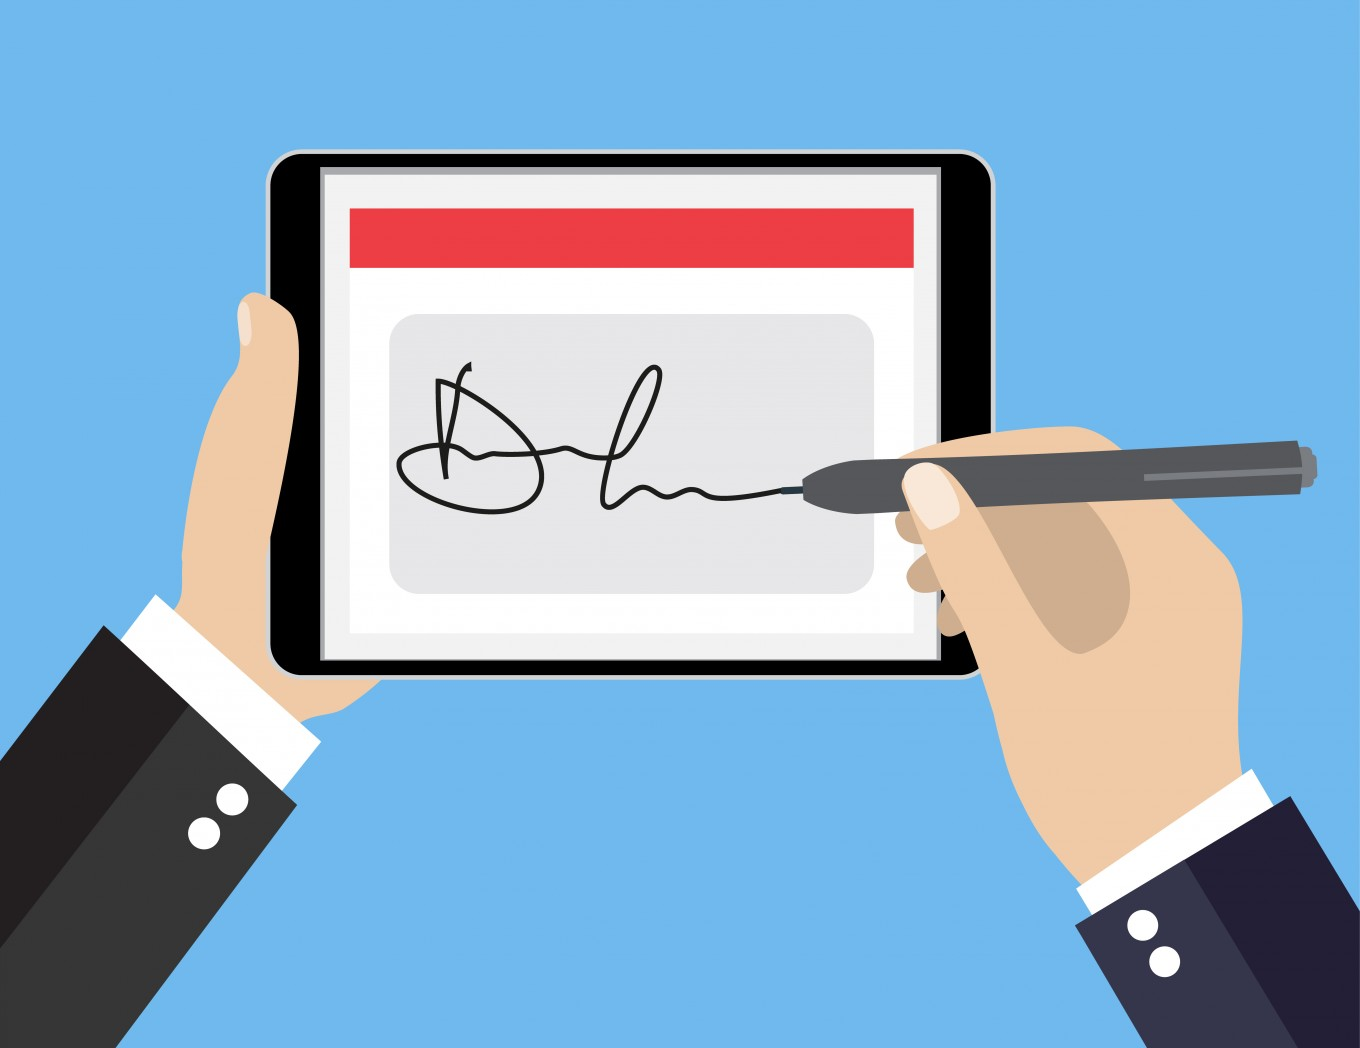 Ministry encourages use of digital signatures